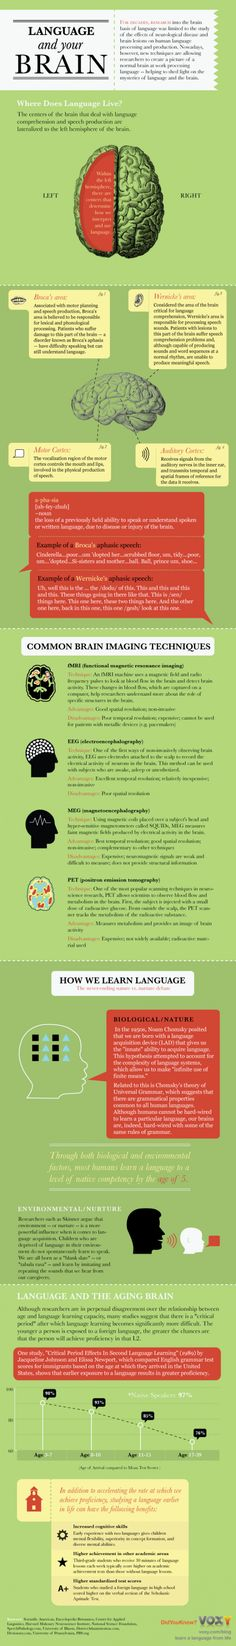 How we learn language...  For centuries, researchers have studied the brain to find exactly where mechanisms for producing and interpreting language reside. Theories abound on how humans acquire new languages and how our developing brains learn to process languages. We take a look at the mysteries of language and the brain in the infographic below.